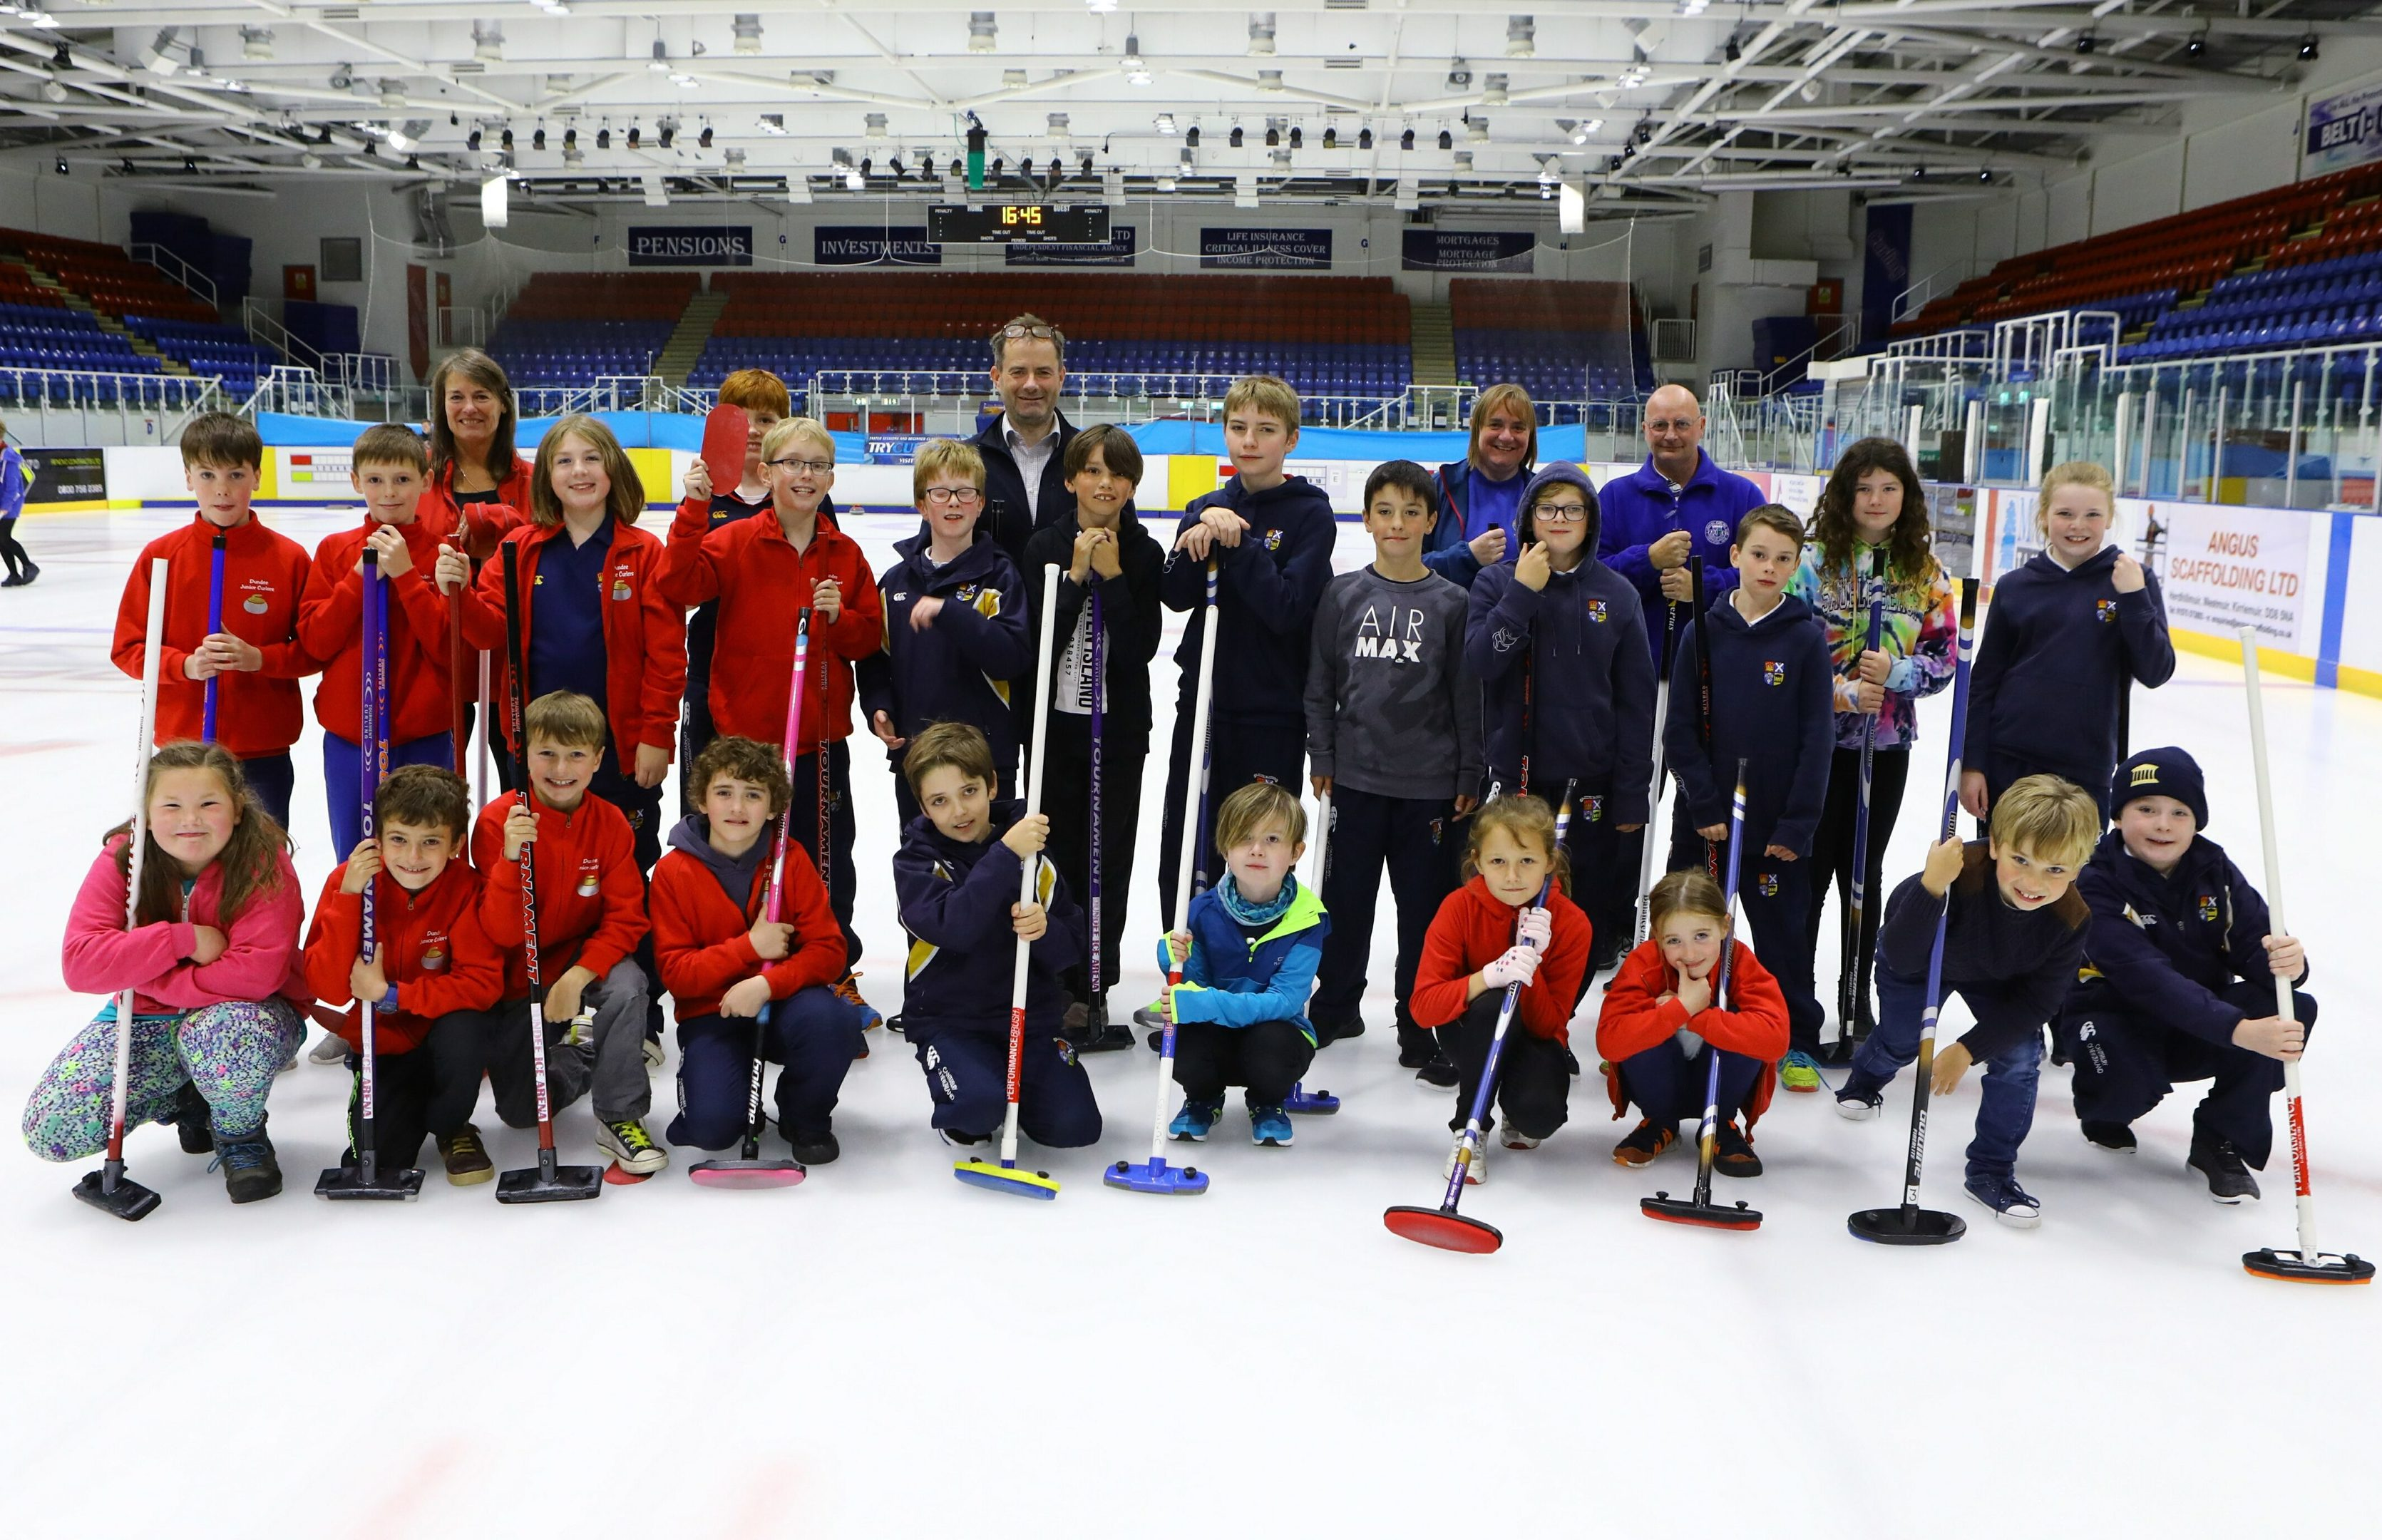 Some members of Dundee Junior Curling Club at the Ice Arena.